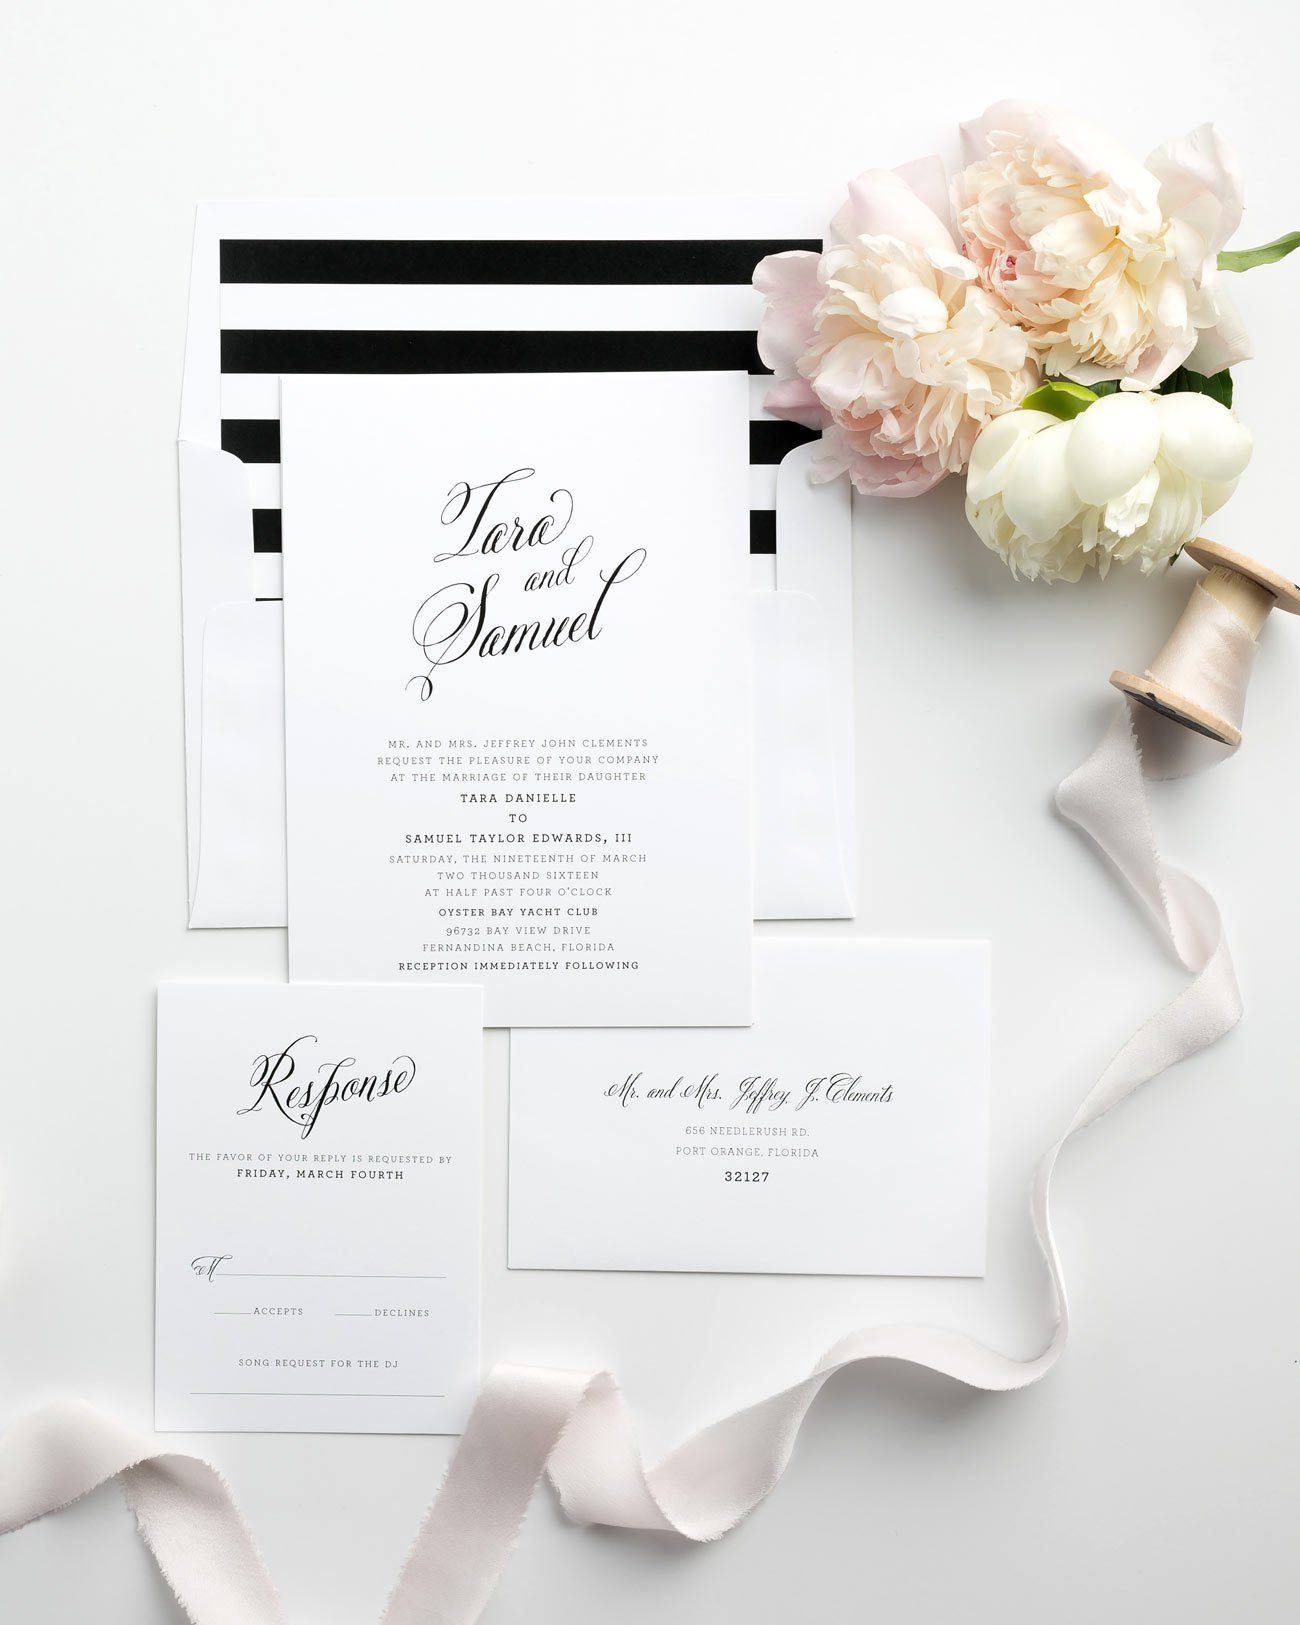 Simple Black and White Wedding Invitations with Calligraphy and Striped Accents